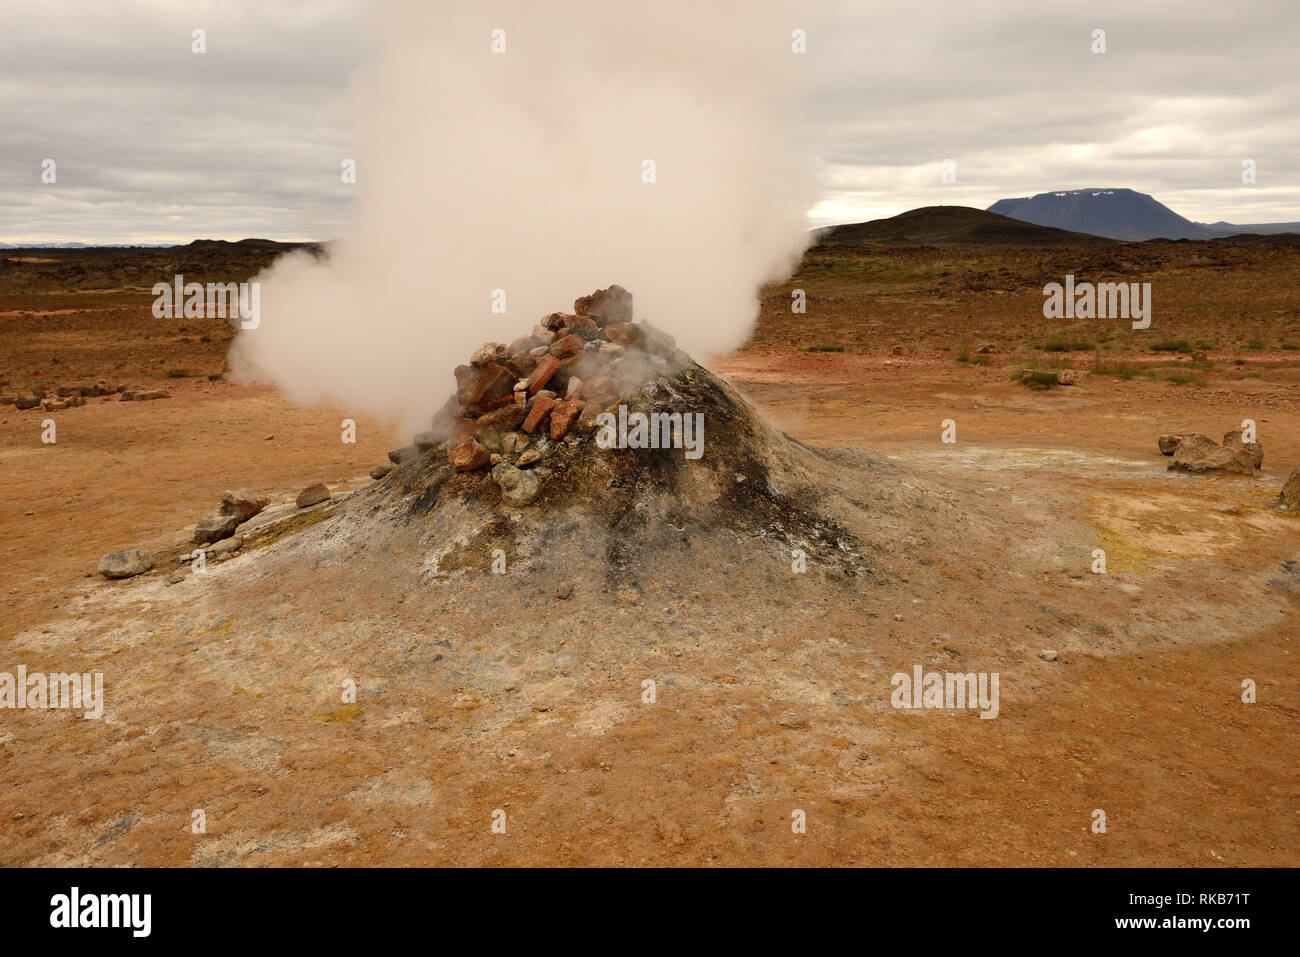 A fumarole at Namafjall in Iceland. - Stock Image